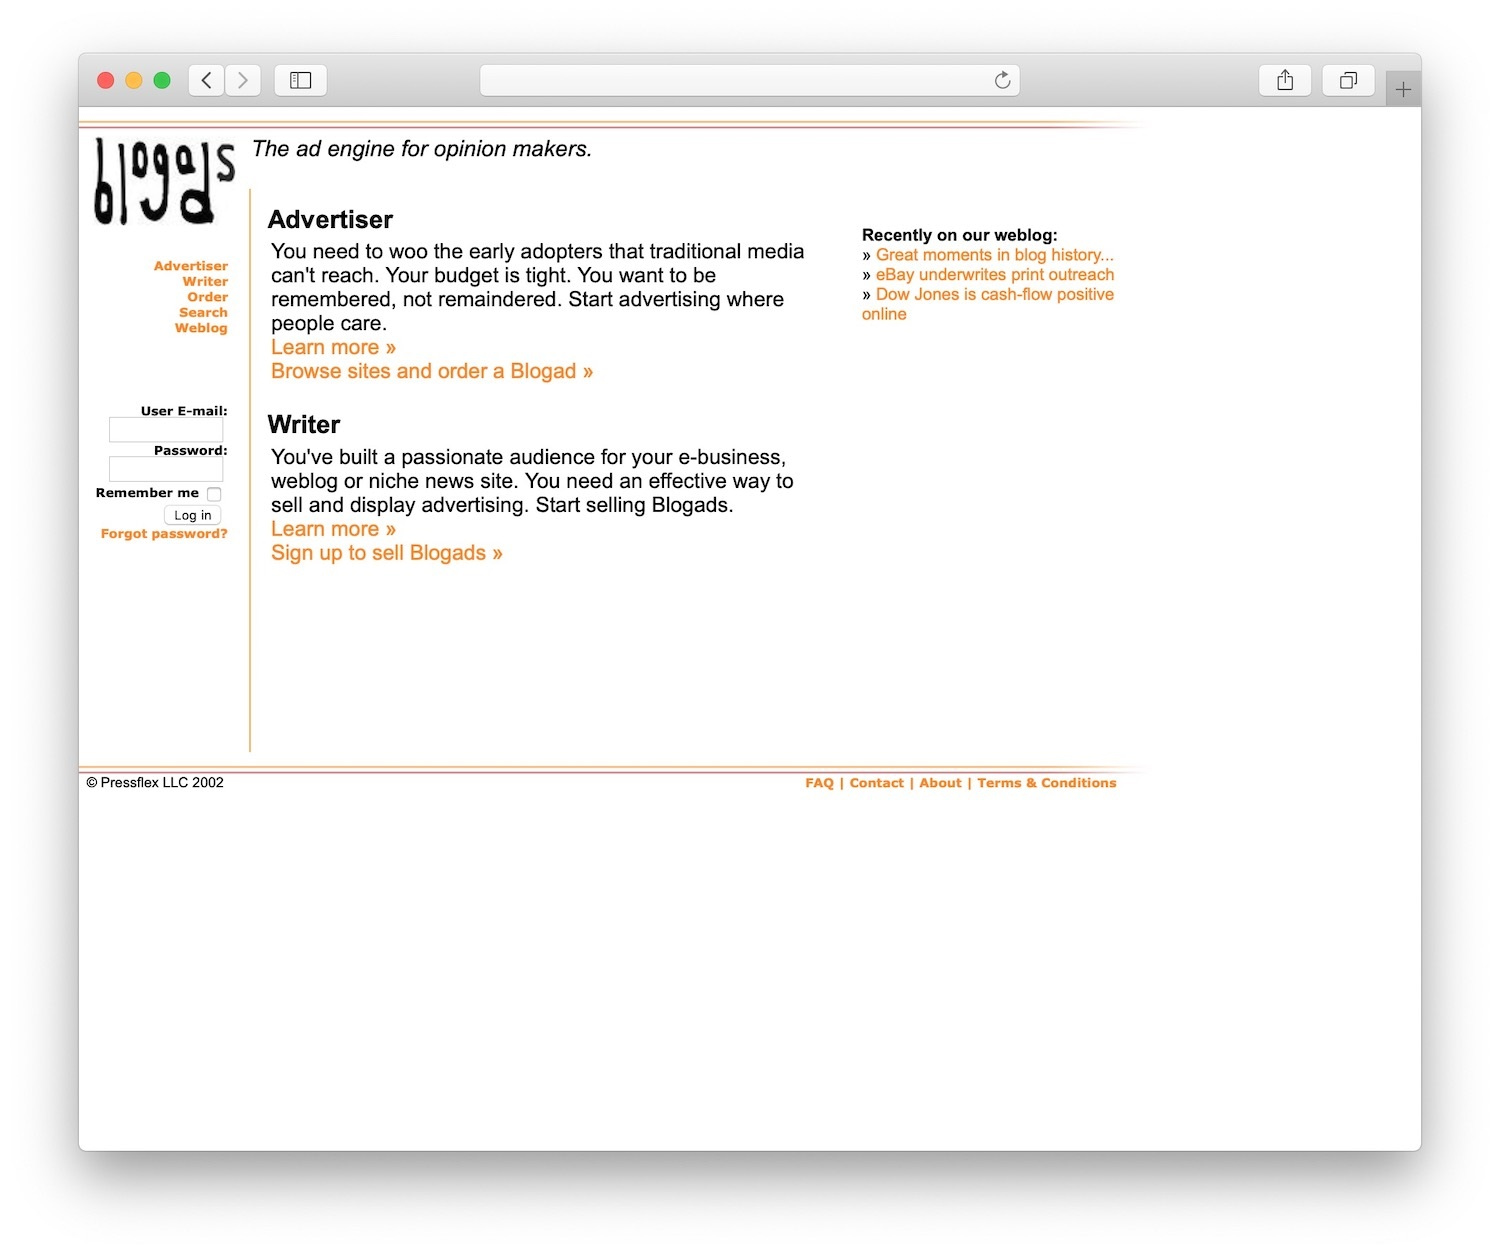 blogads was one of the first ad services for blogging